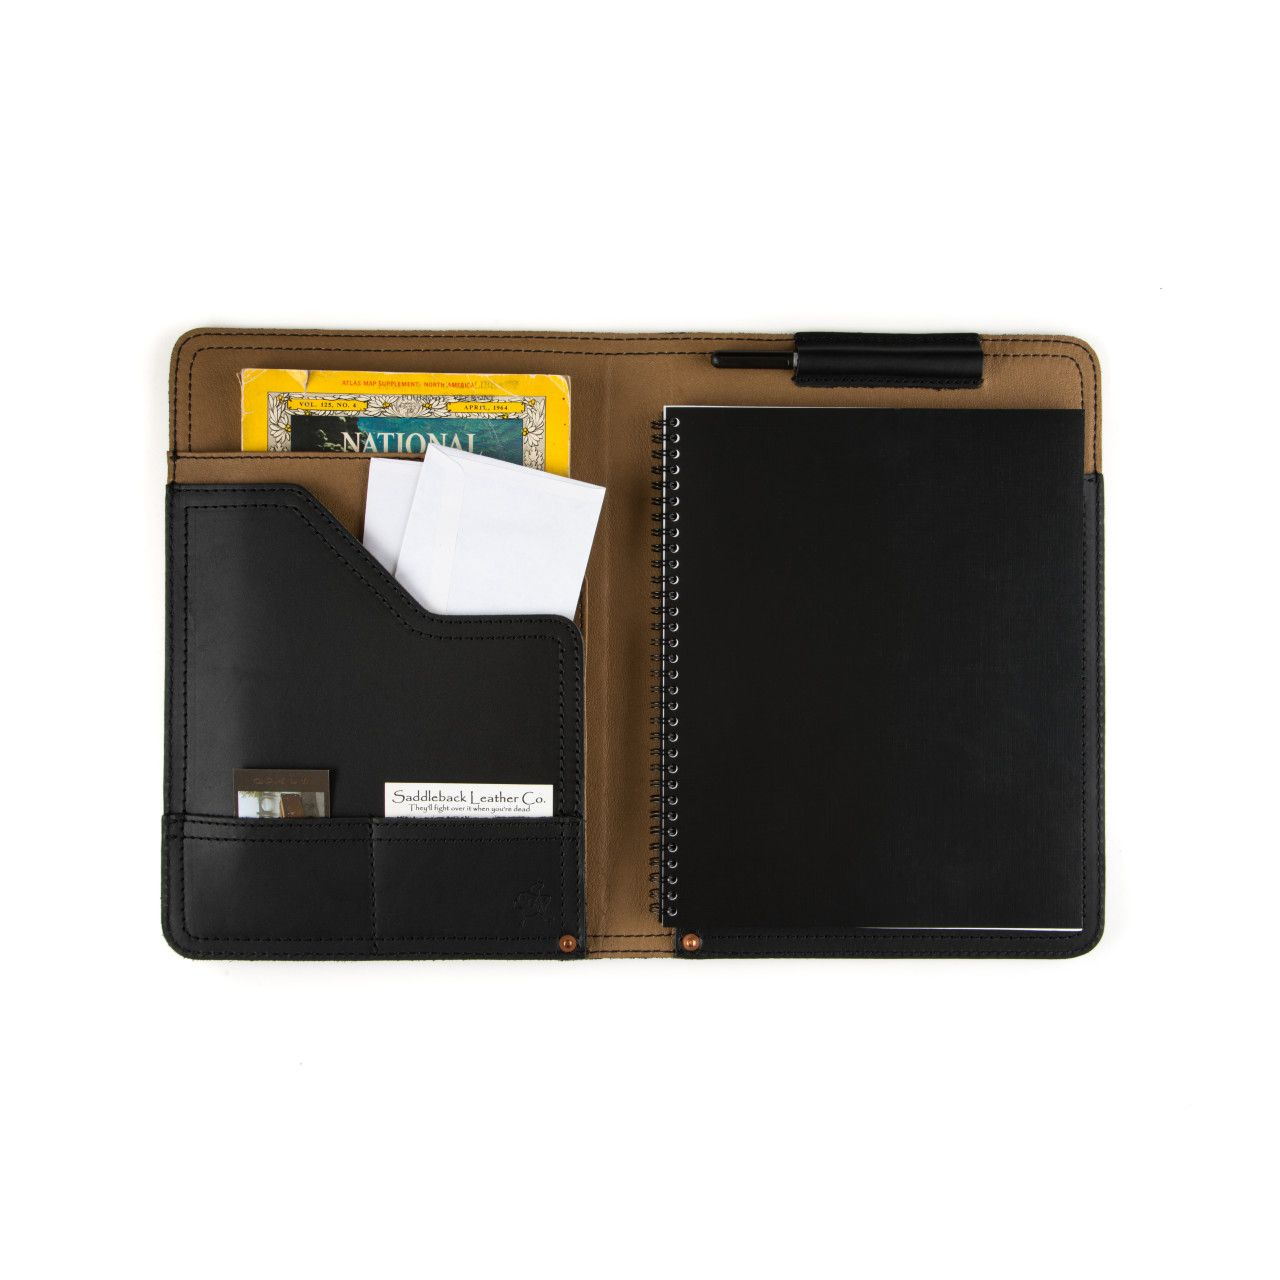 Notepad, business cards and map located in leather notepad cover medium in black leather